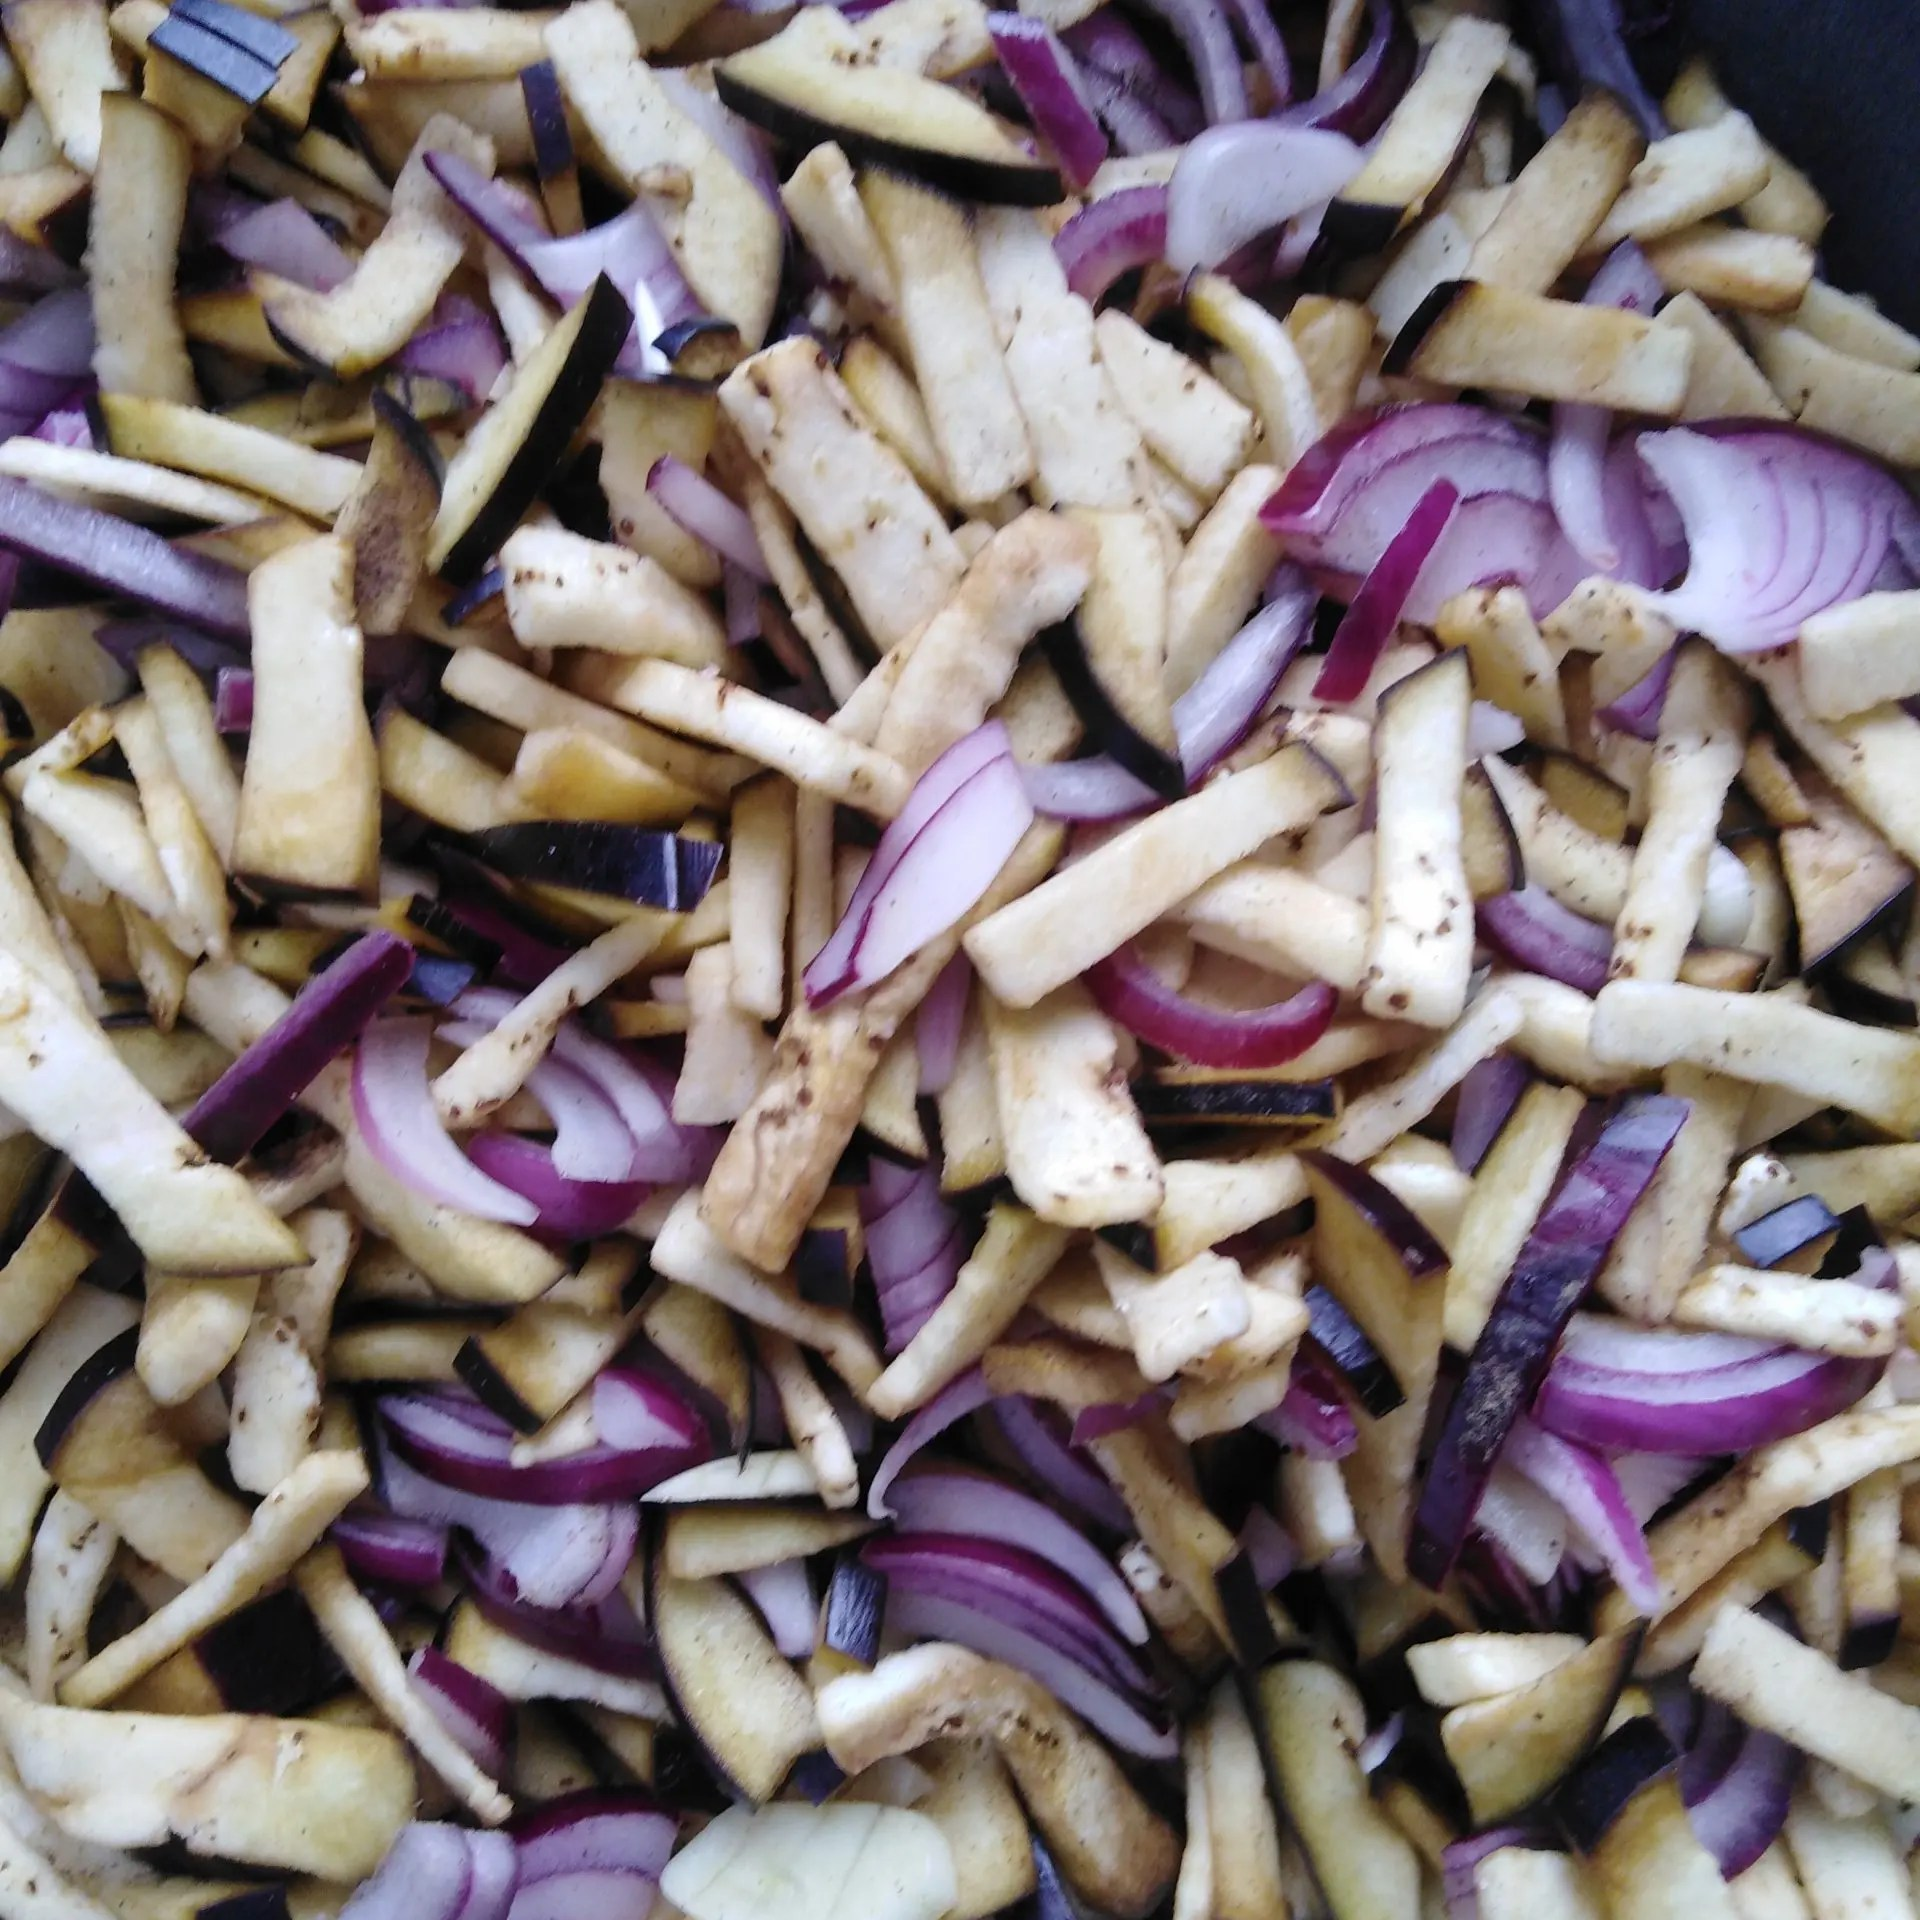 Mixed ingredients for Vegan Swiss Potato Fritter Stuffing: red onions, eggplant and garlic